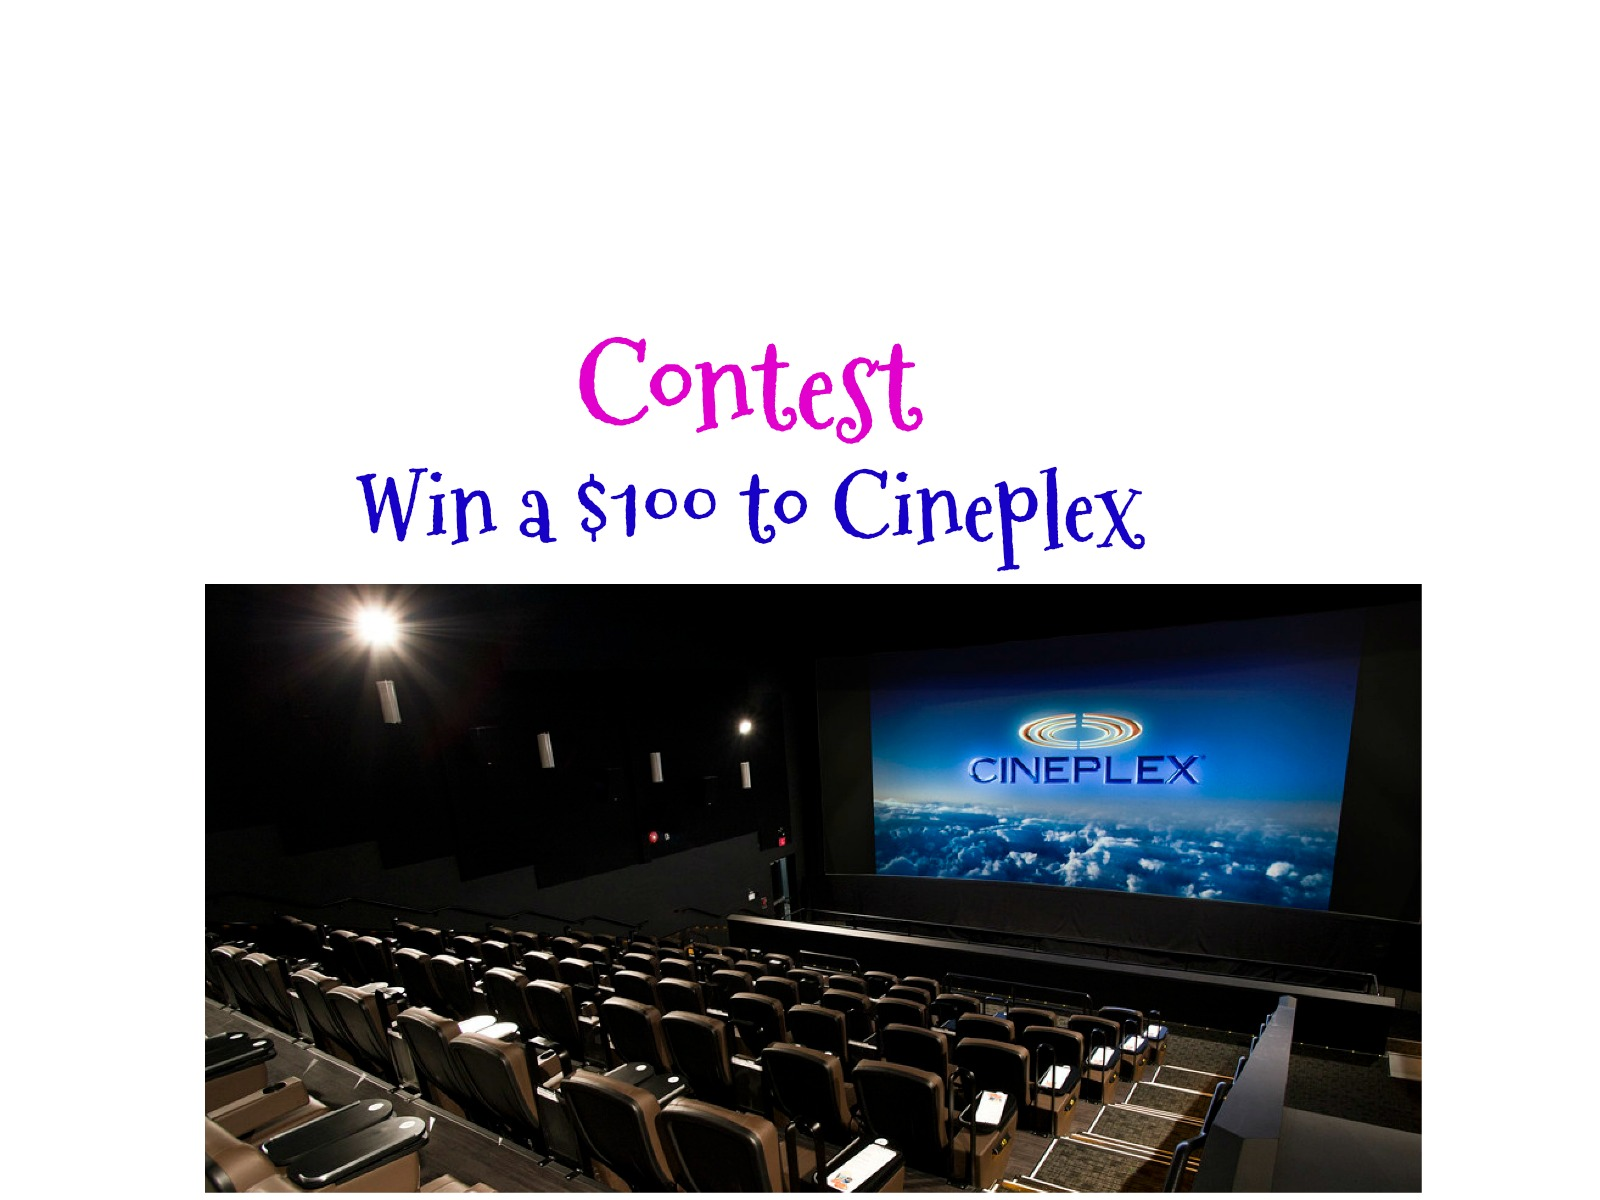 Contest: $100 Cineplex Gift Card